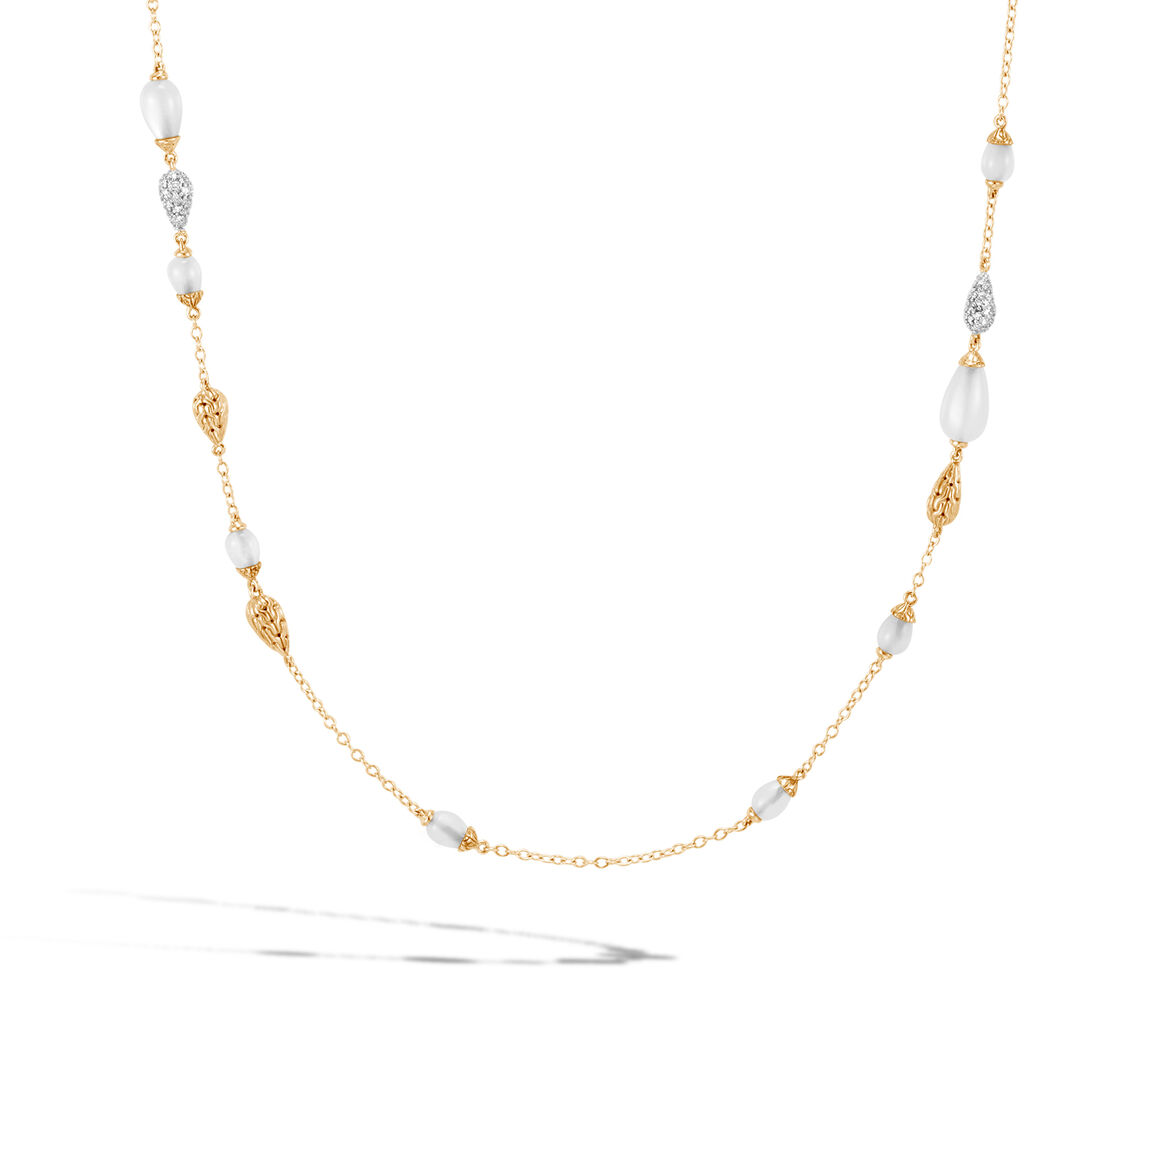 Classic Chain Station Necklace in 18K, Gemstones, Diamonds